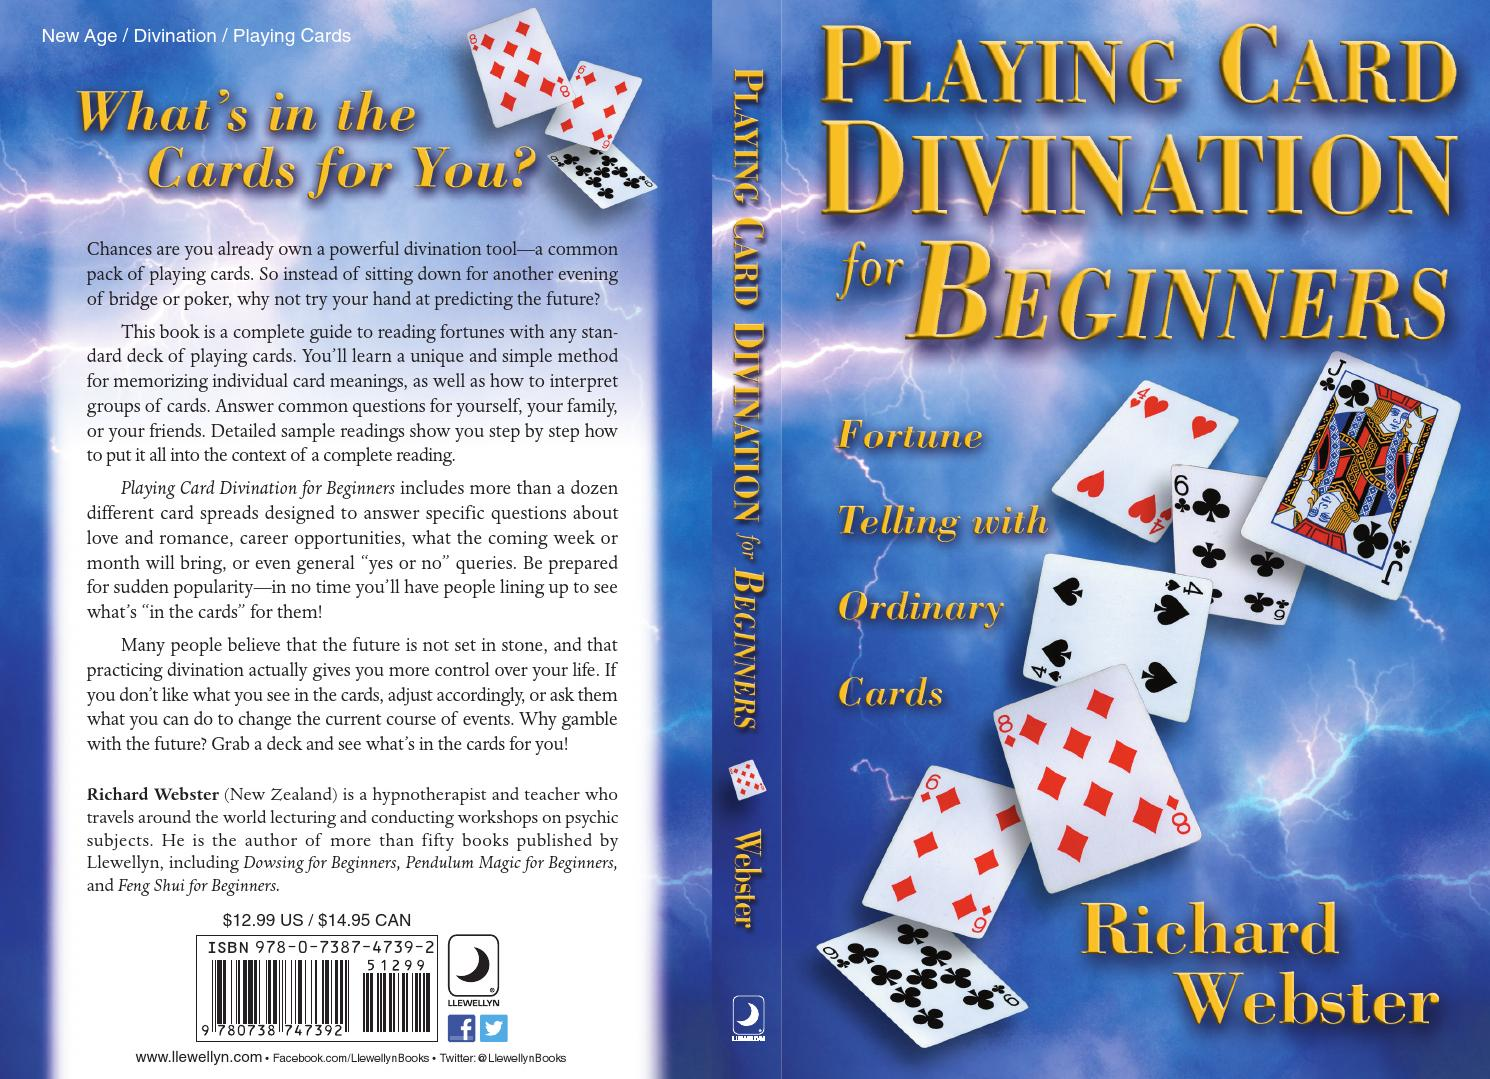 Playing Card Divination for Beginners, by Richard Webster by